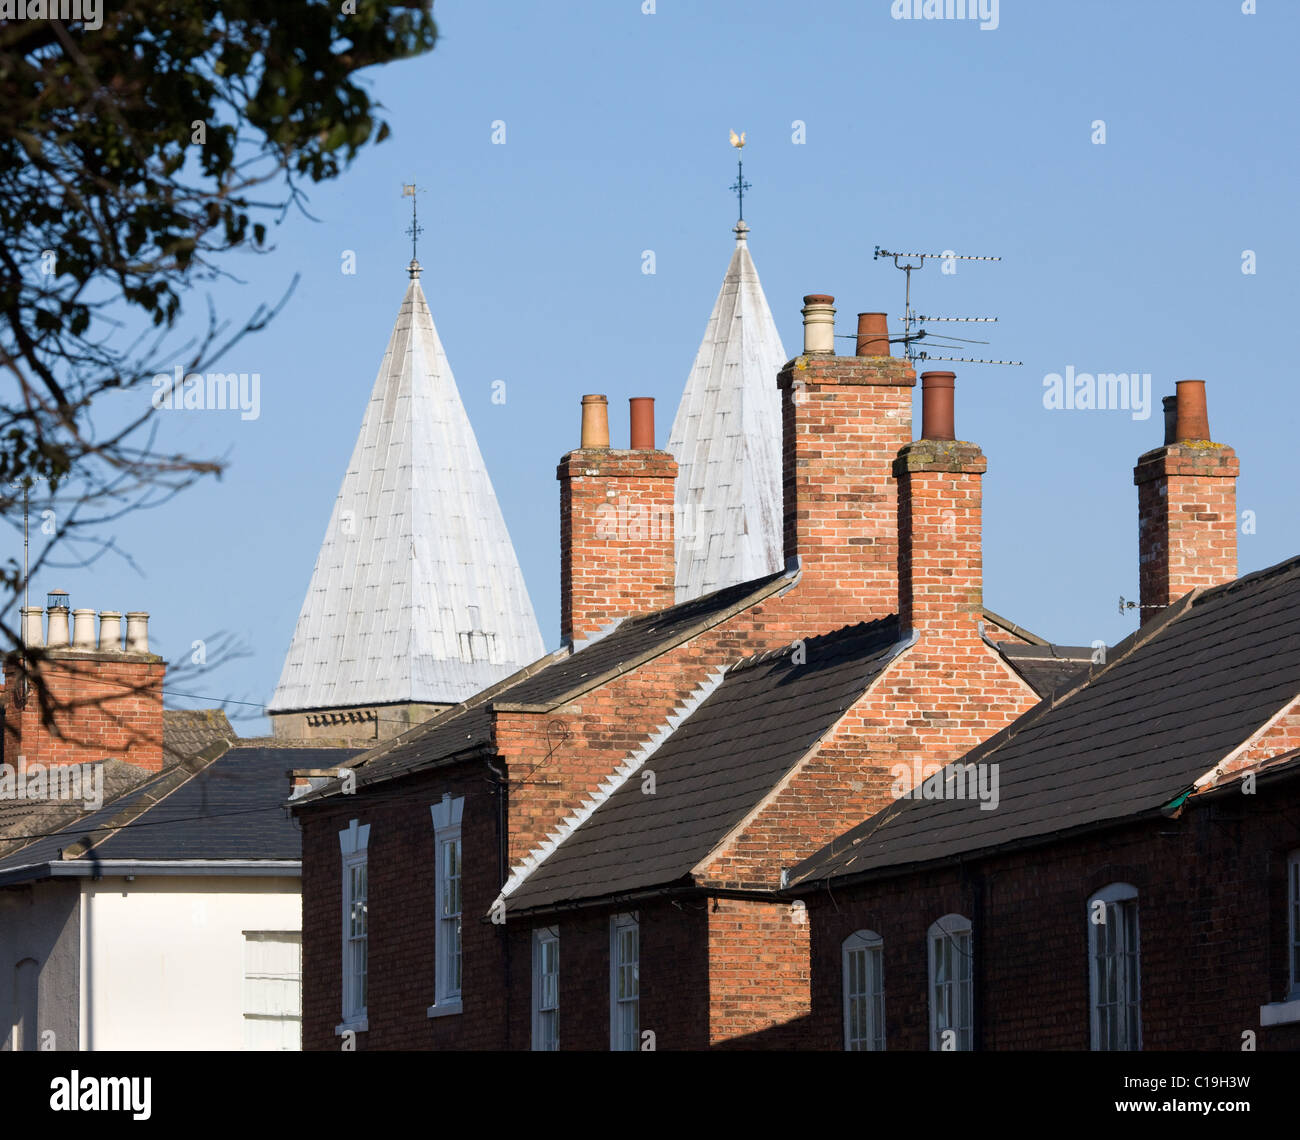 Southwell Minster in Nottinghamshire with its unusual pepper pot towers peering over surrounding houses - Stock Image